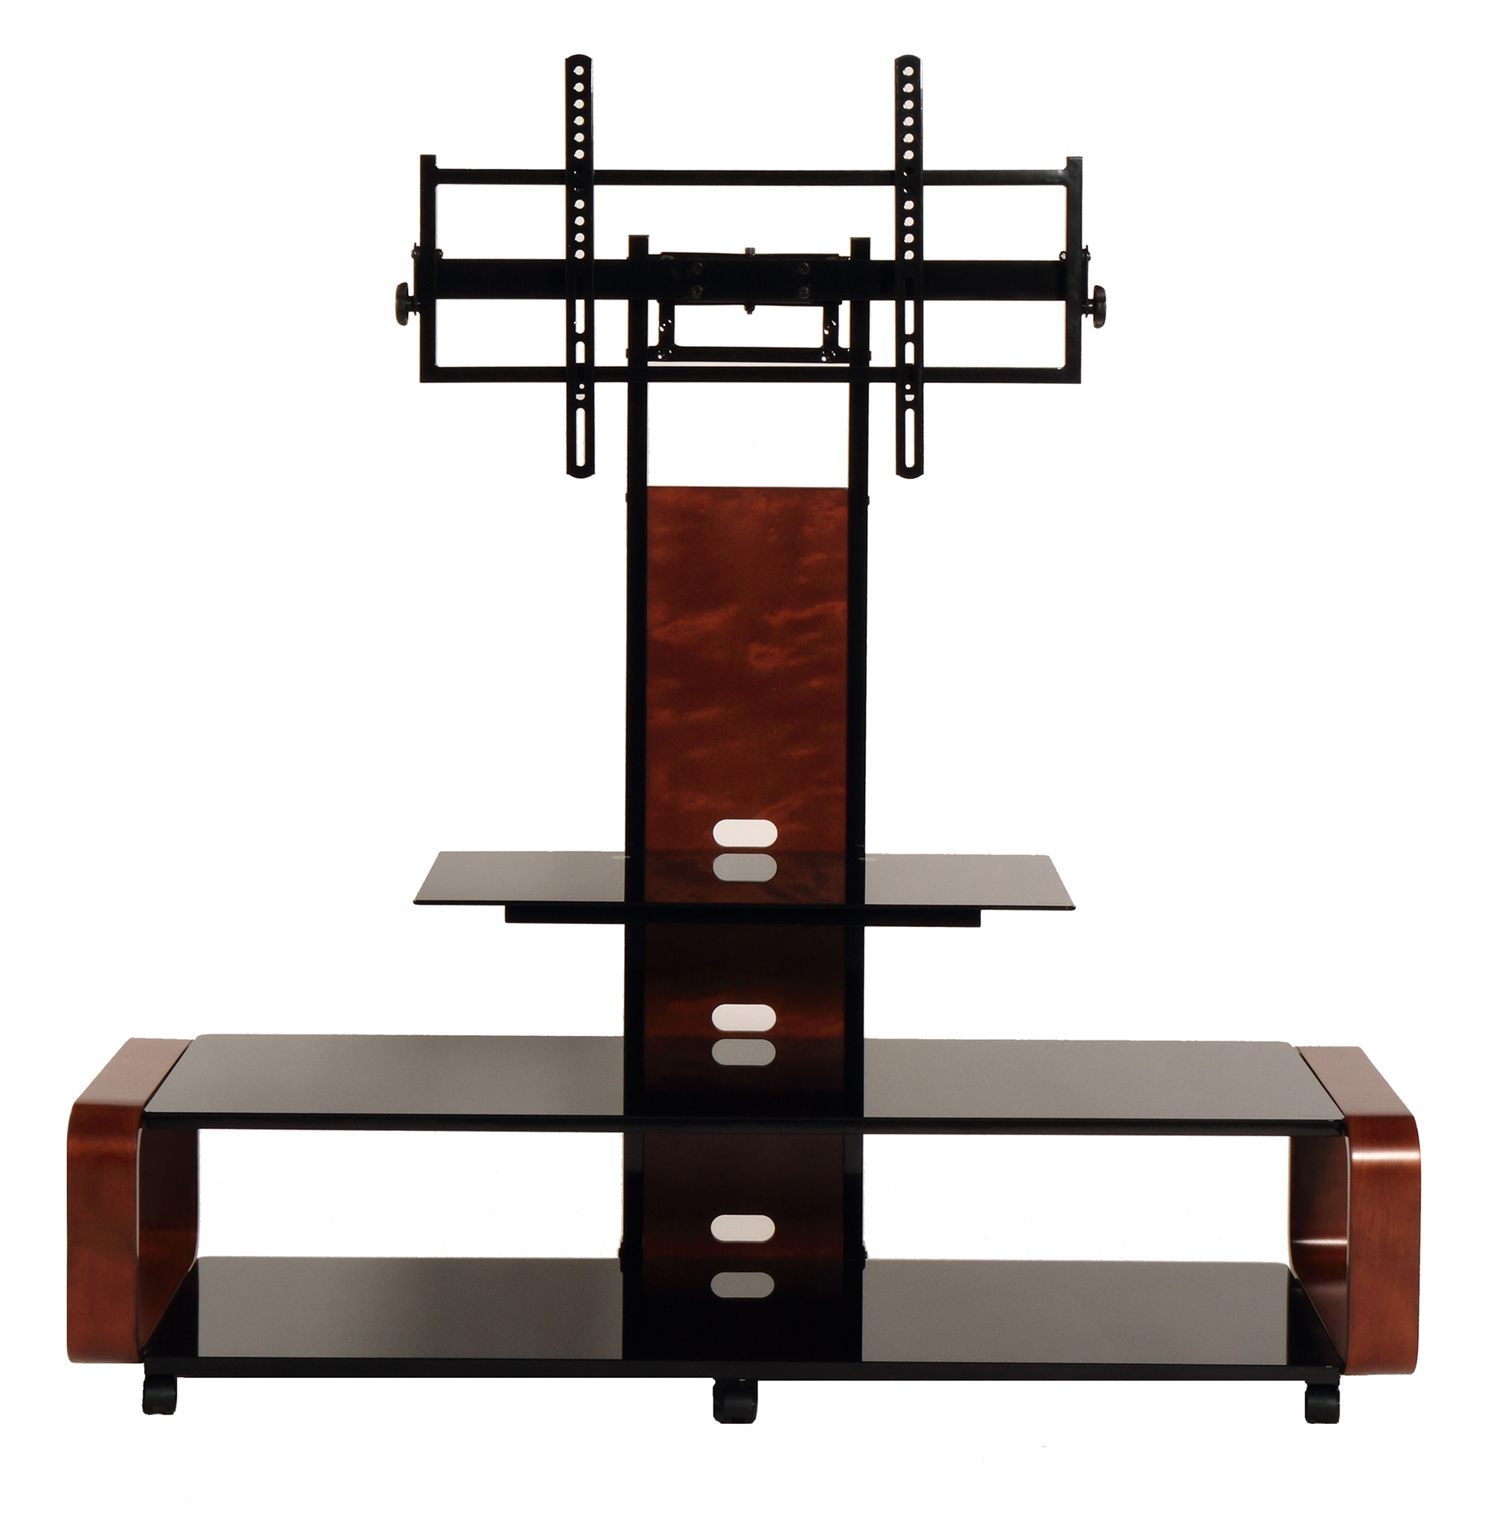 TransDeco Curved Wood TV Stand/Cart with Universal Mounting System for 35 to 85 inch TV, Dark Oak